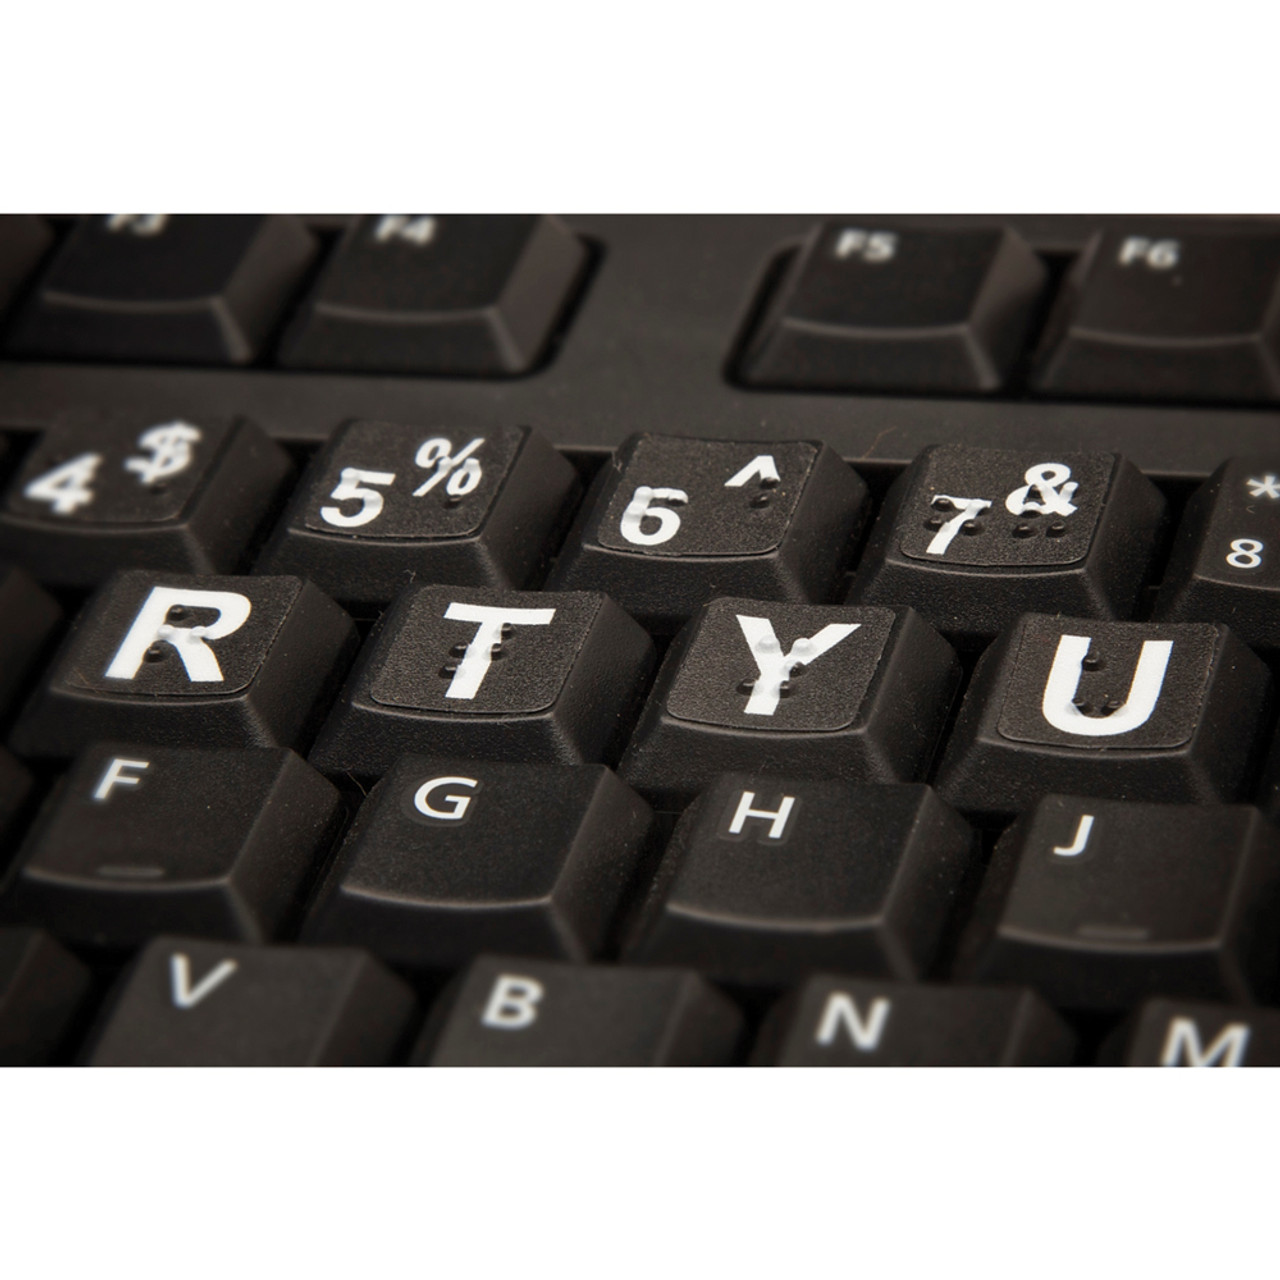 White on Black Braille Low Vision keyboard label